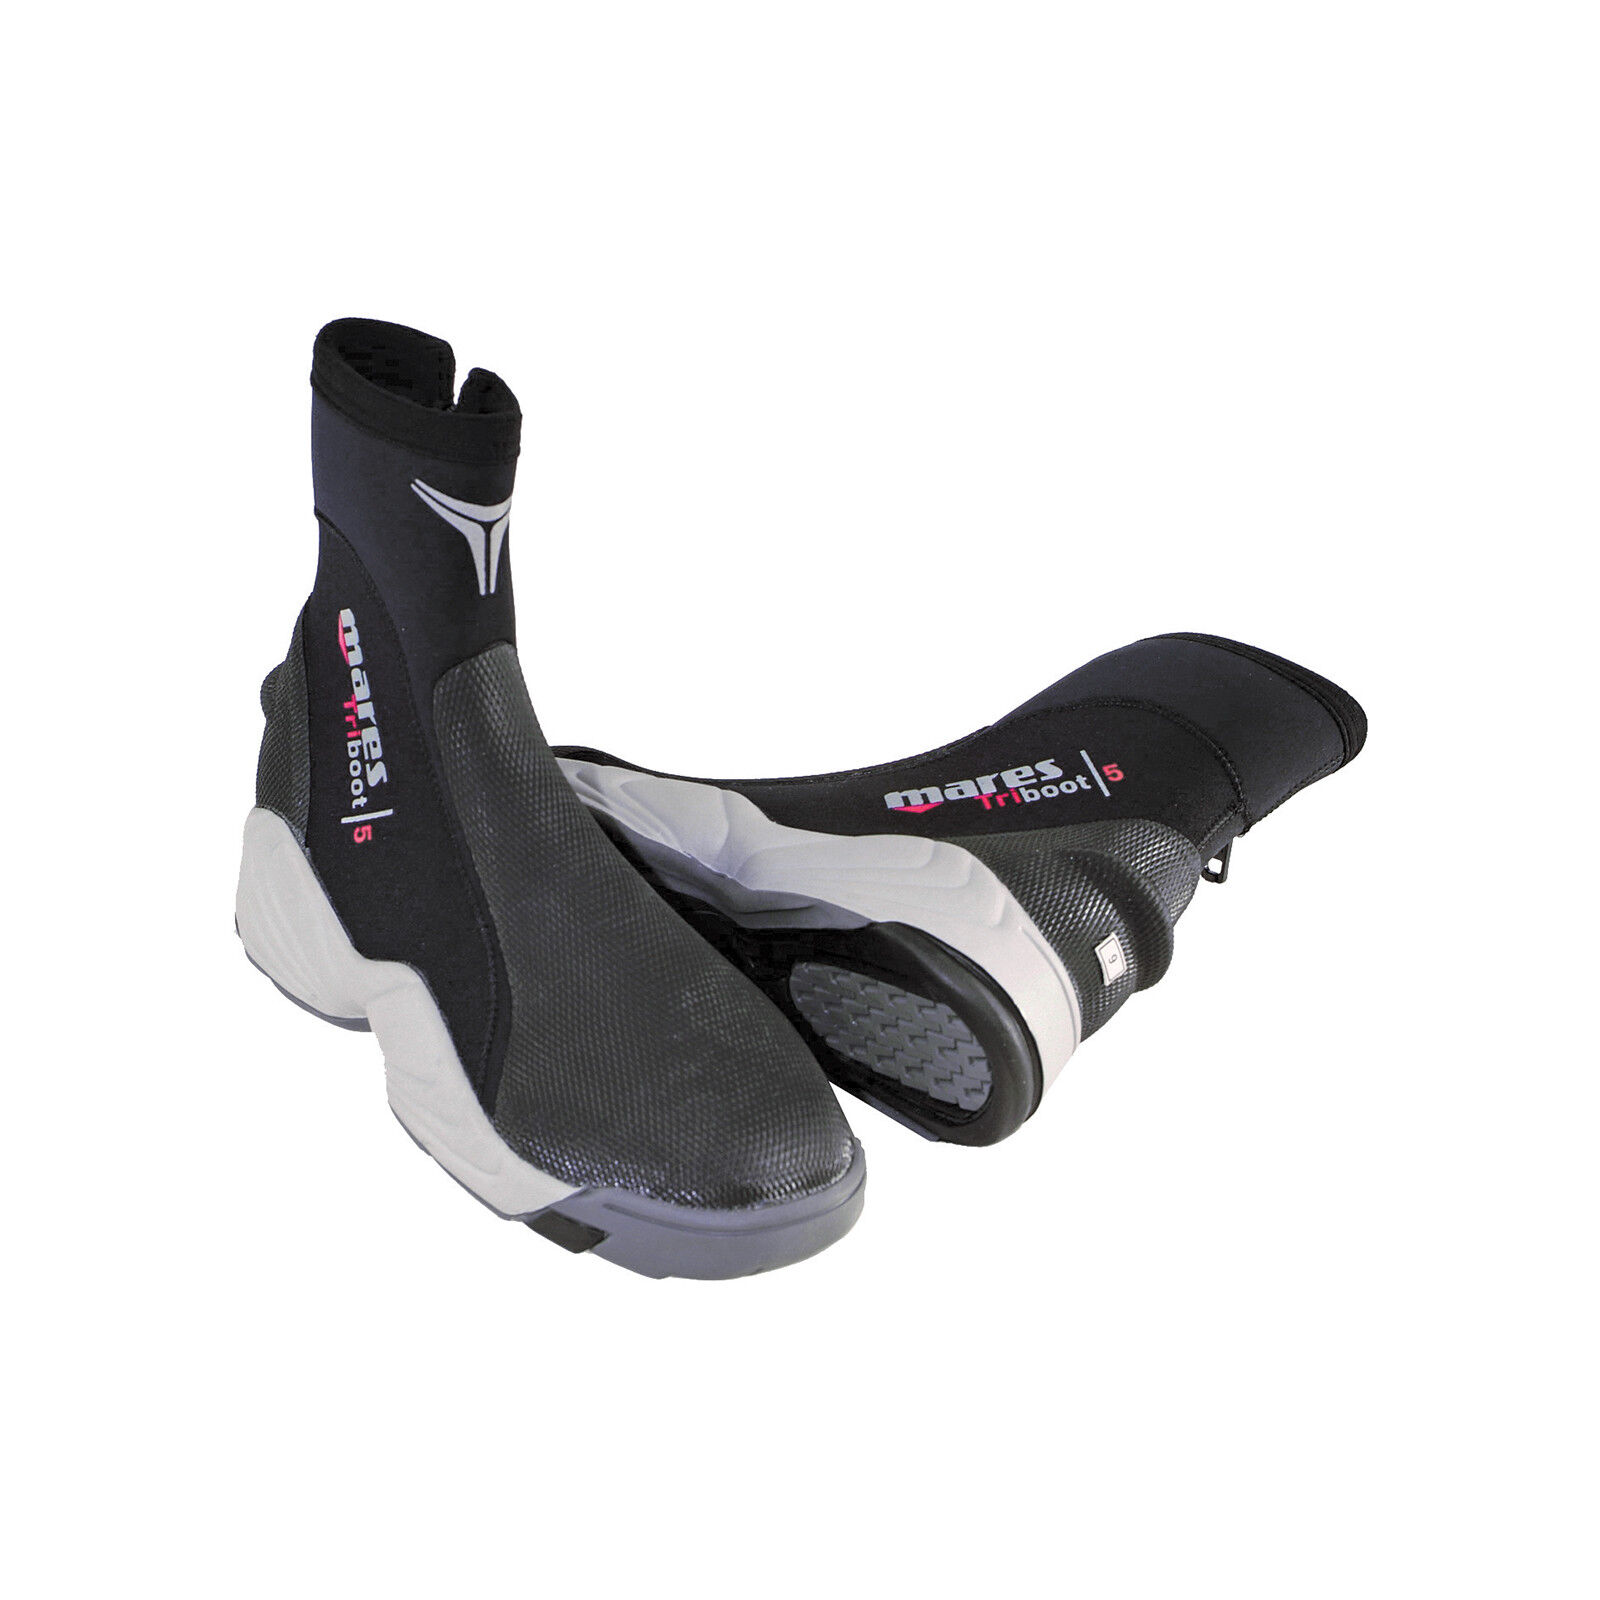 LO3 8 Mares  boots 5mm zip trilastic SIZE 8^